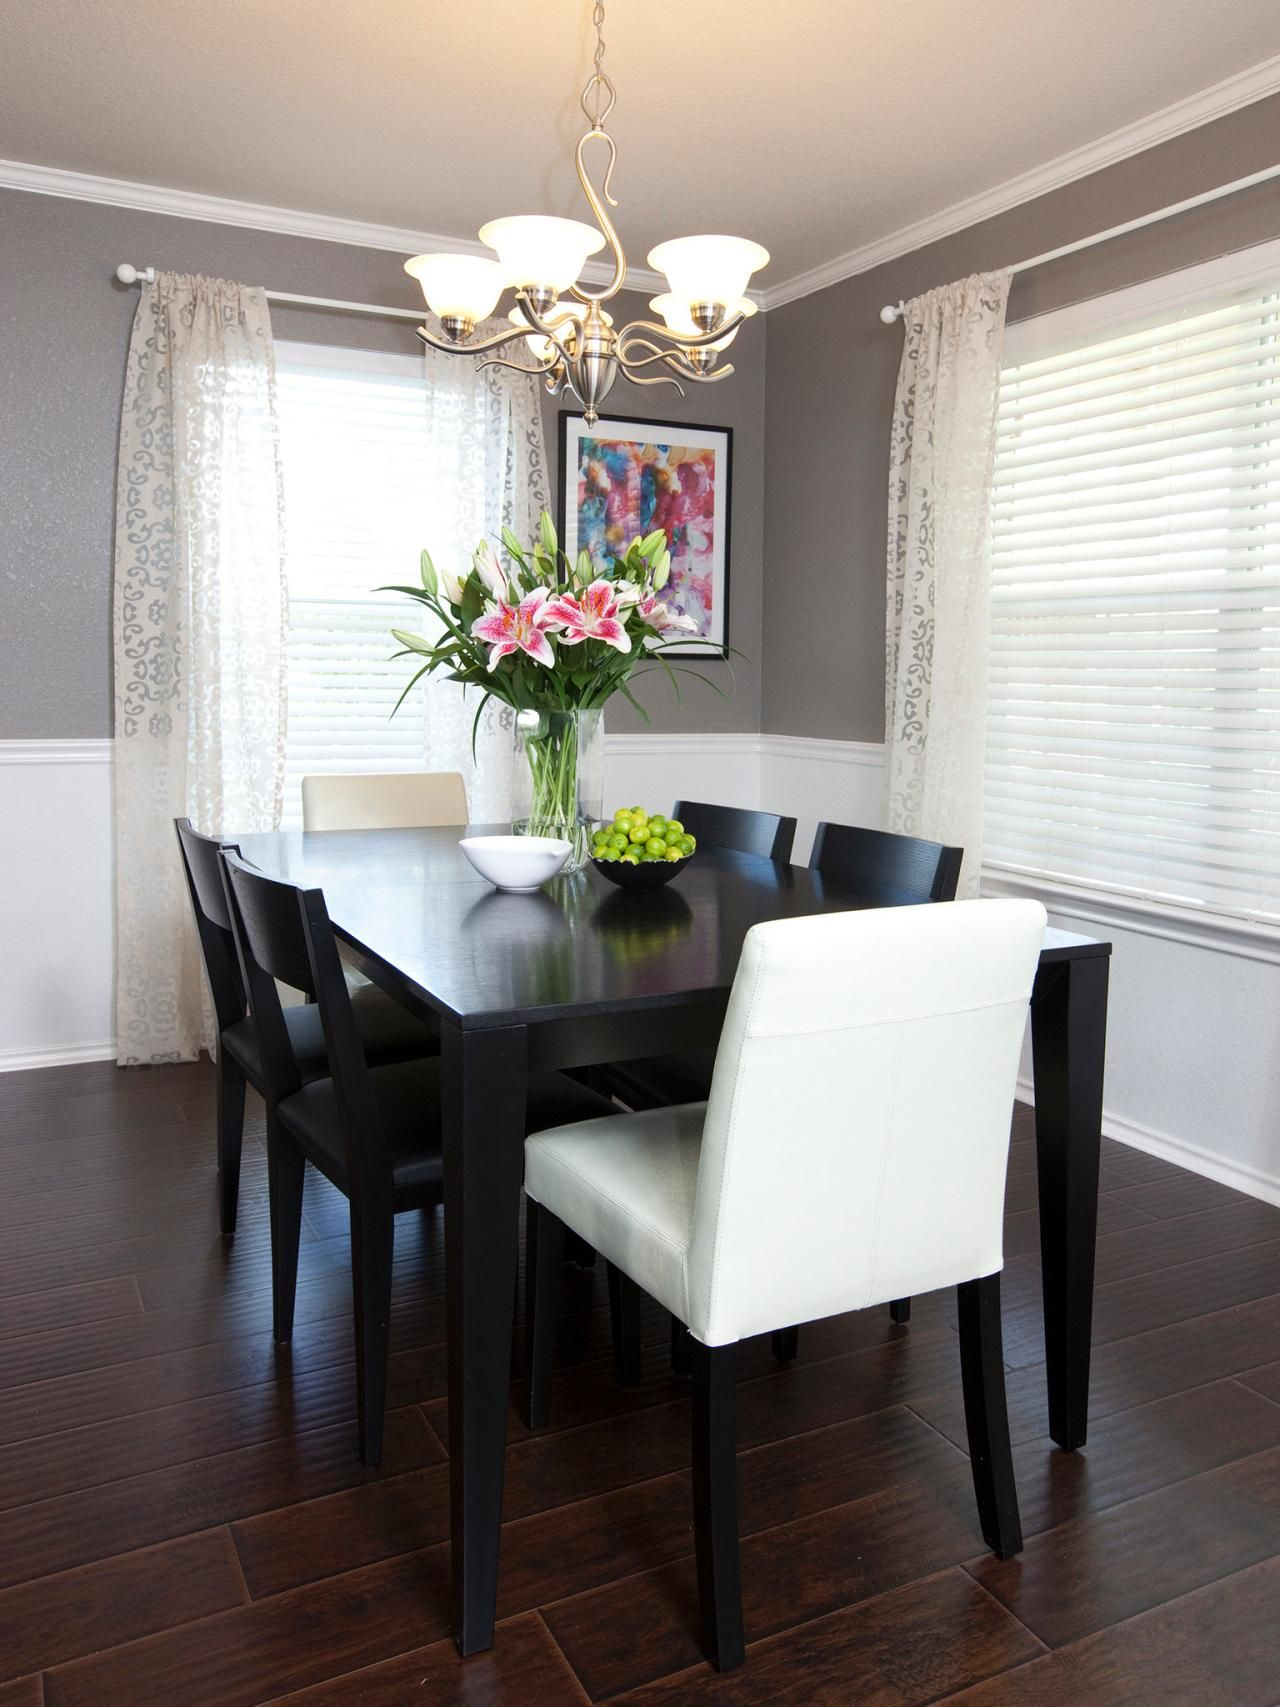 30 Black And White Dining Room That Will Make You Wish To Go Monochrome  #blackandwhitediningroom